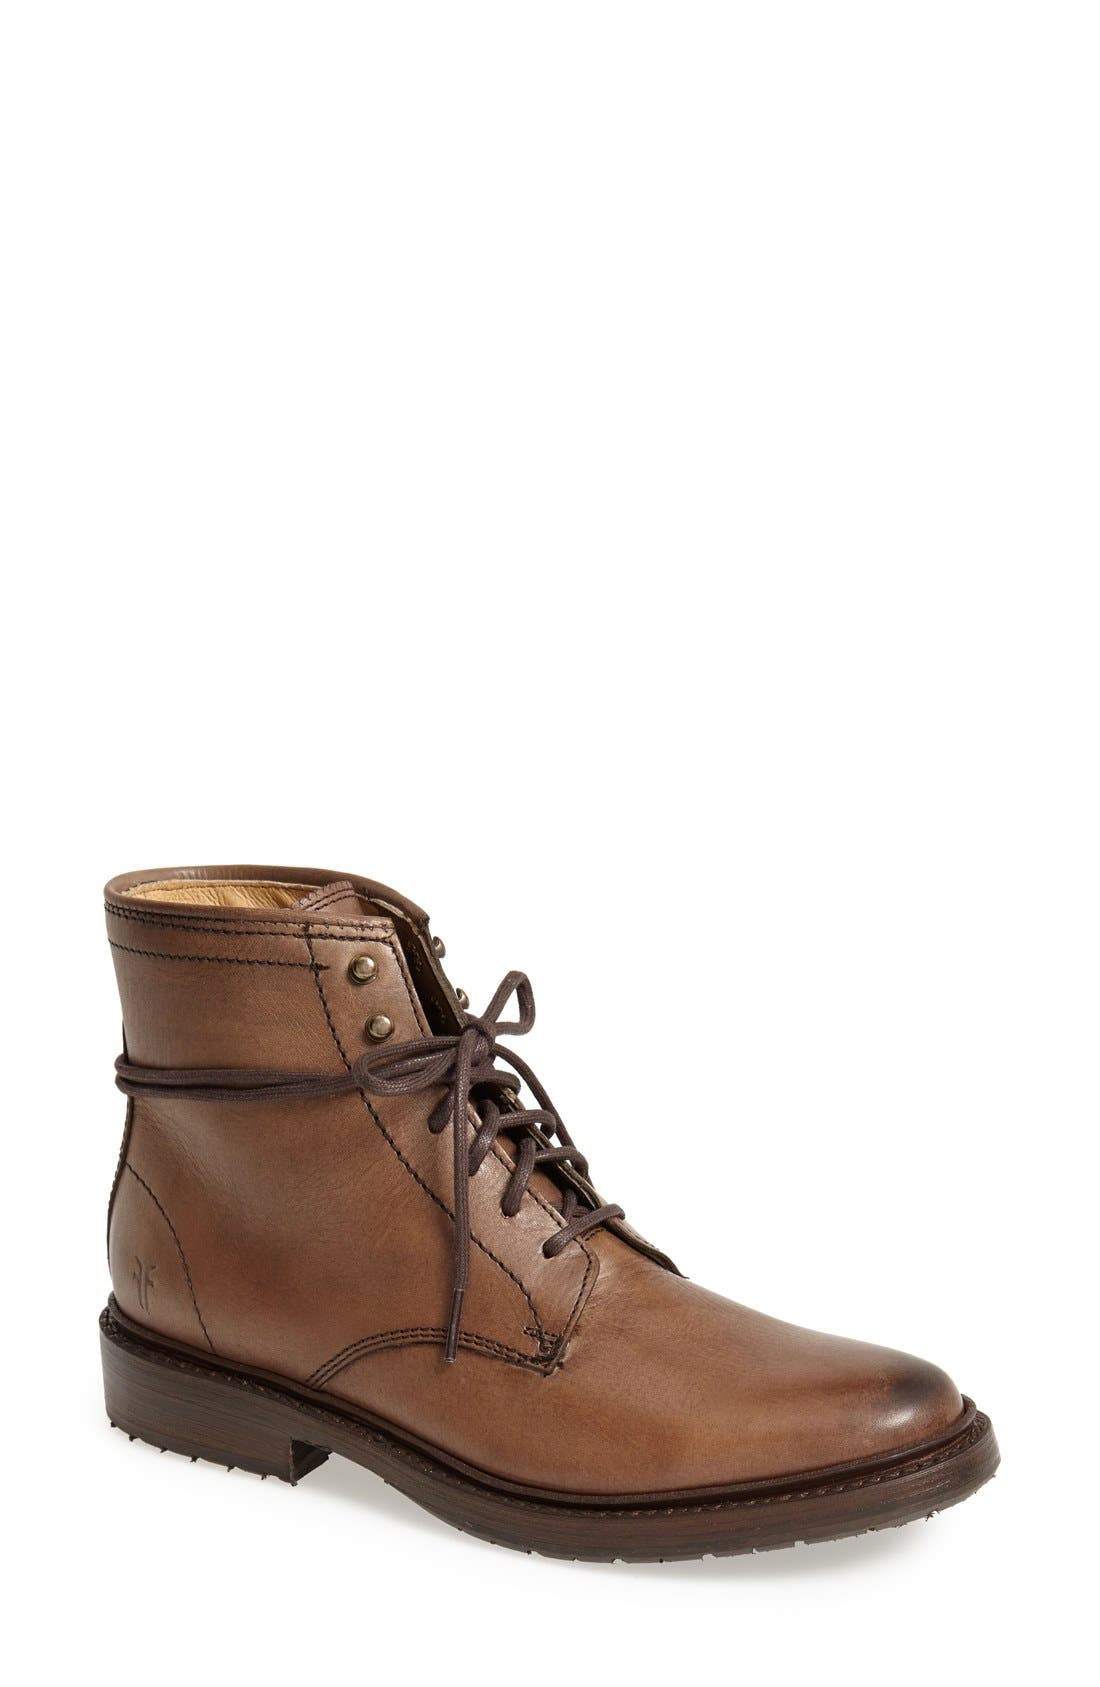 Alternate Image 1 Selected - Frye 'James' Lug Lace-Up Boot (Women)